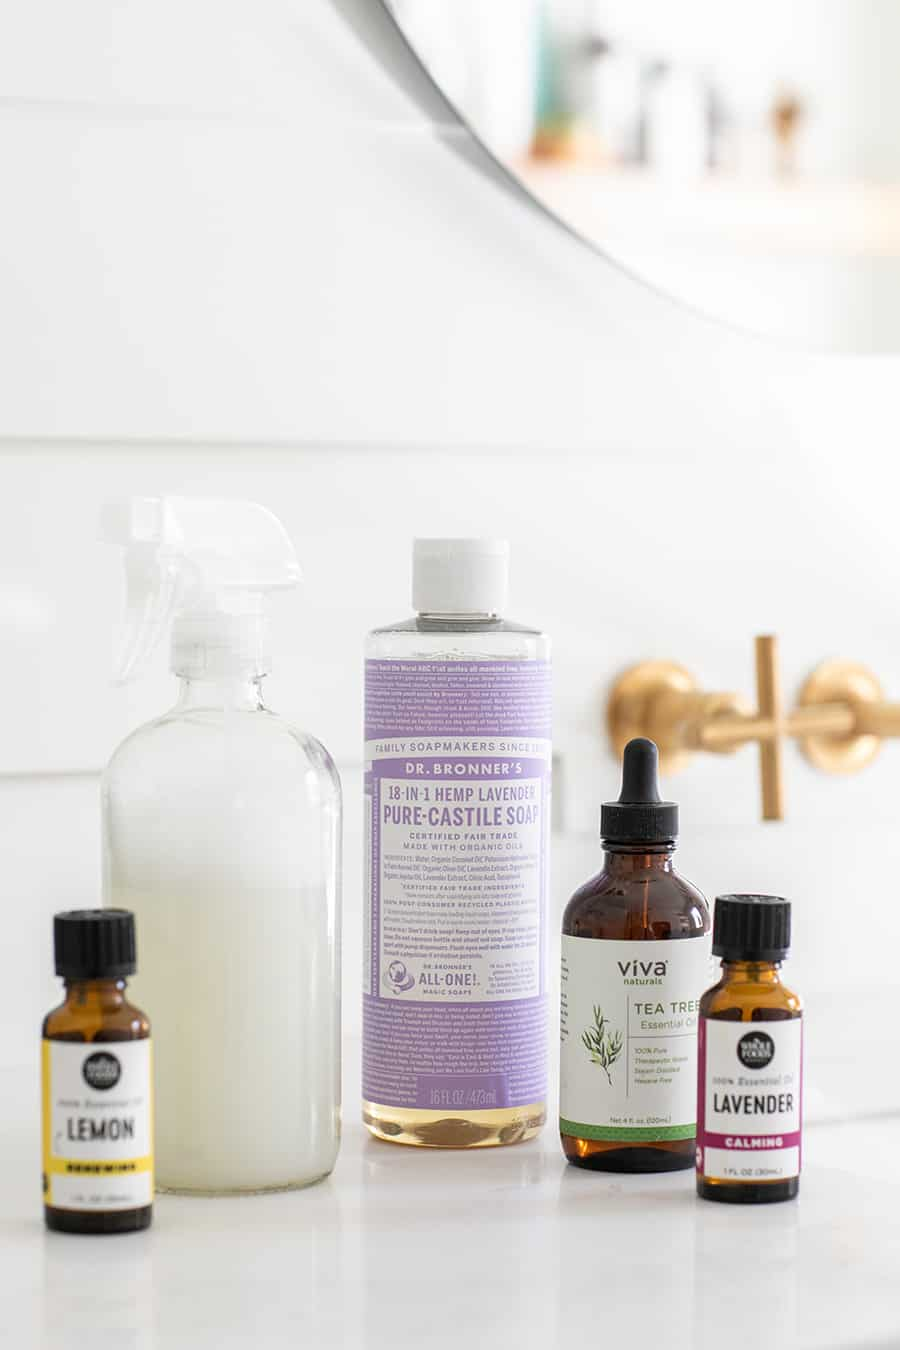 Castile Soap, Essential Oils, Spray Bottle to make Natural Cleaning Products